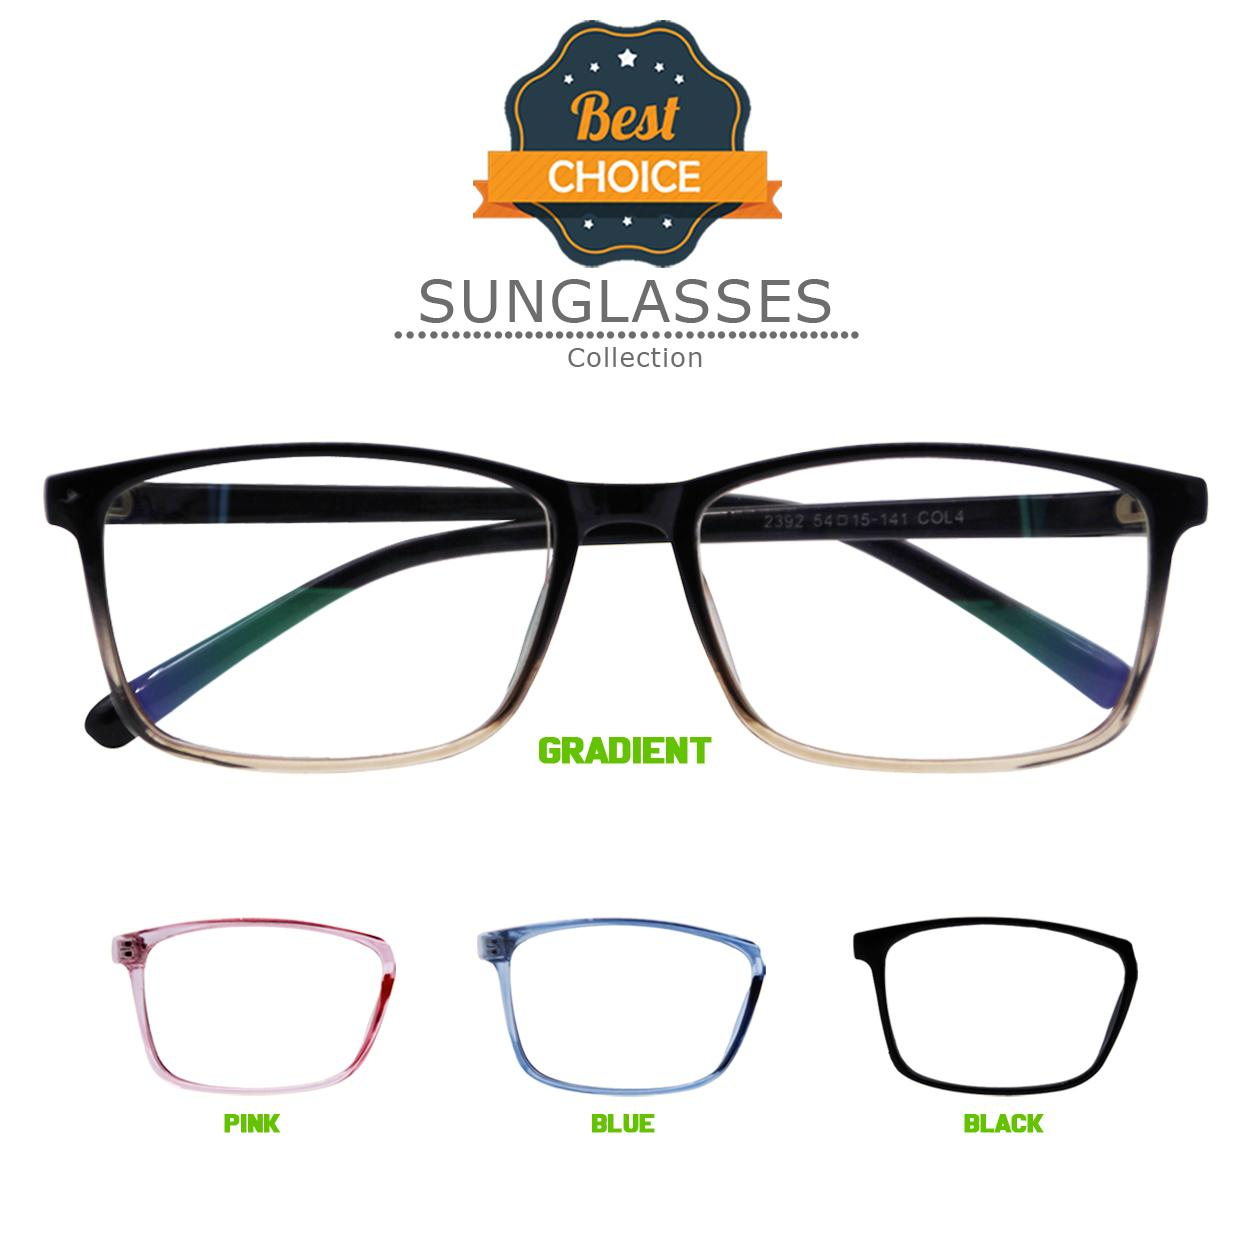 02a8105c2e Computer Eyeglasses for sale - Glasses for Computers online brands ...